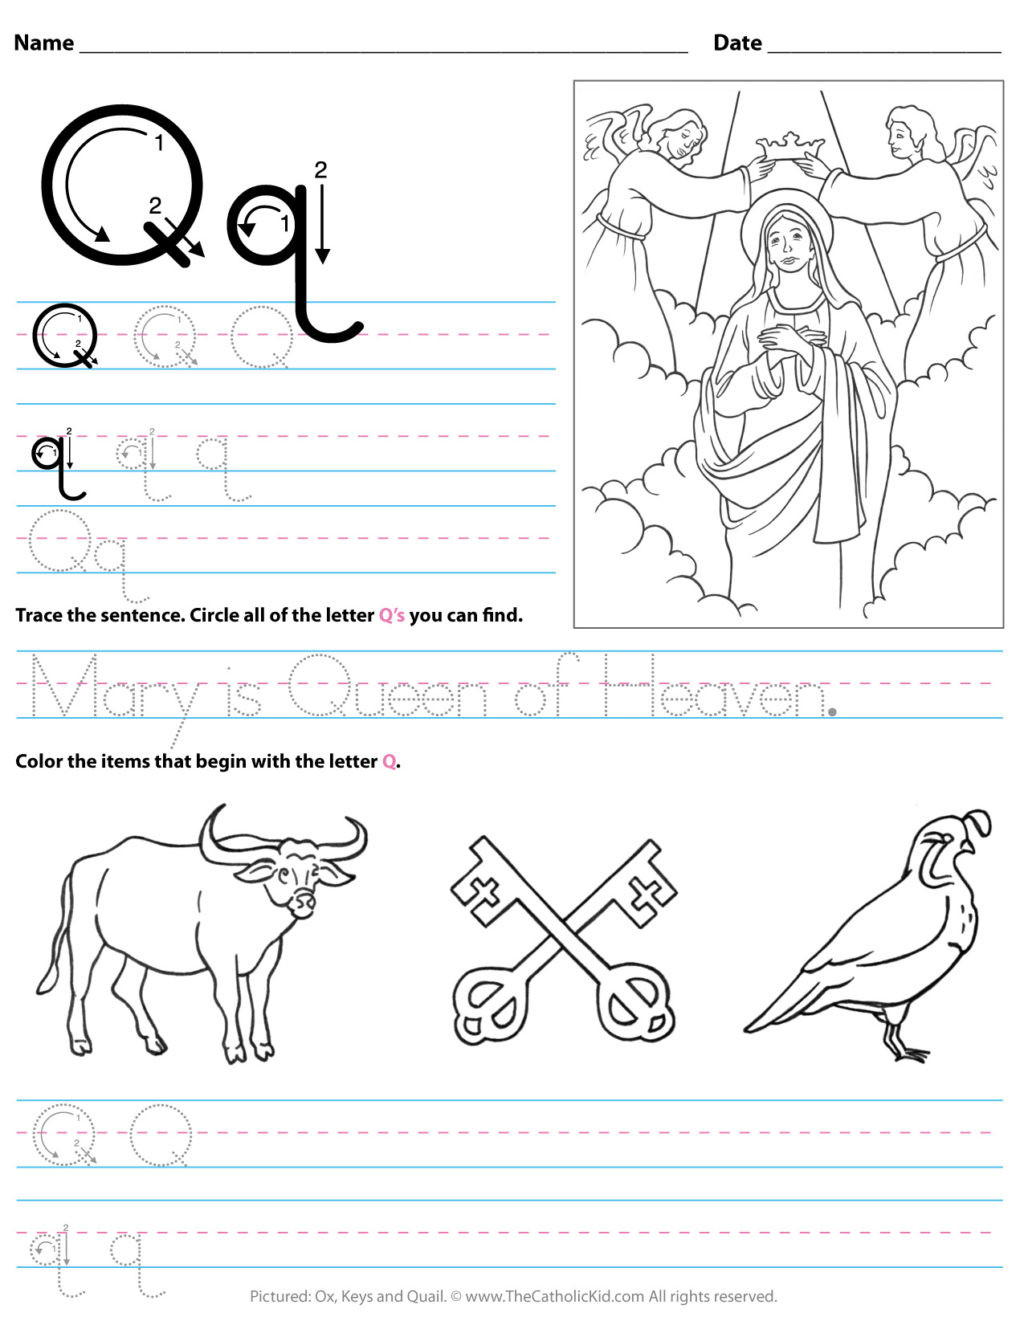 Letter Q Preschool Worksheets Worksheet Working Sheets forolers Image Inspirations